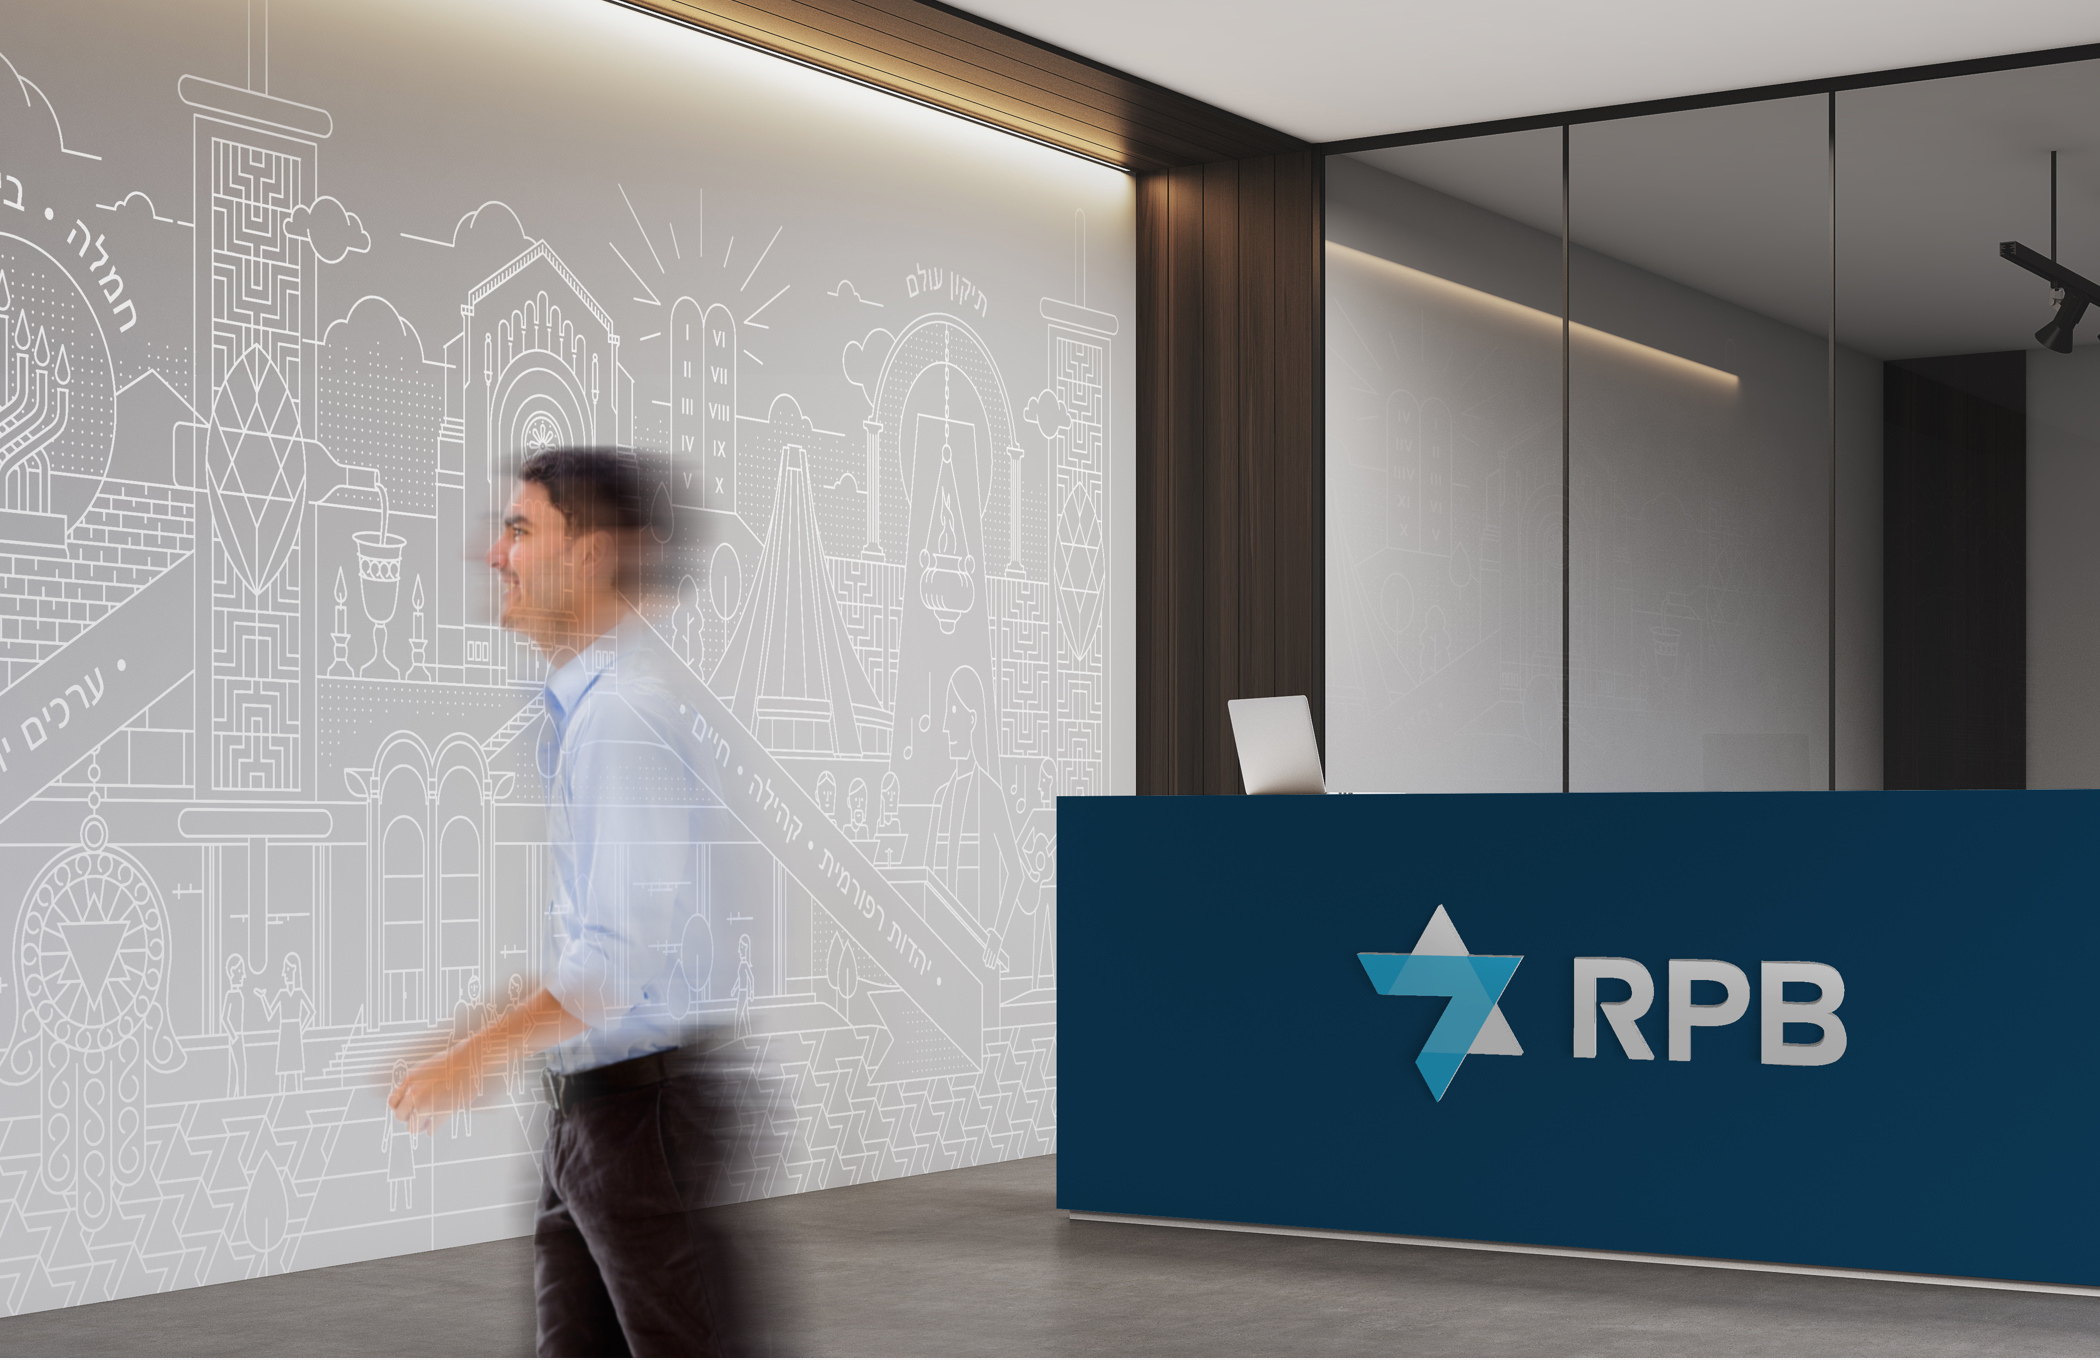 Thinkso.com_Alt-Text Thinkso.com_Alt-Text 100% 10  A man passes by a reception desk with the RPB logo and in front of a large mural depicting Jewish religious architecture. A man passes by a reception desk with the RPB logo and in front of a large mural depicting Jewish religious architecture.; Cell C41         A man passes by a reception desk with the RPB logo and in front of a large mural depicting Jewish religious architecture.